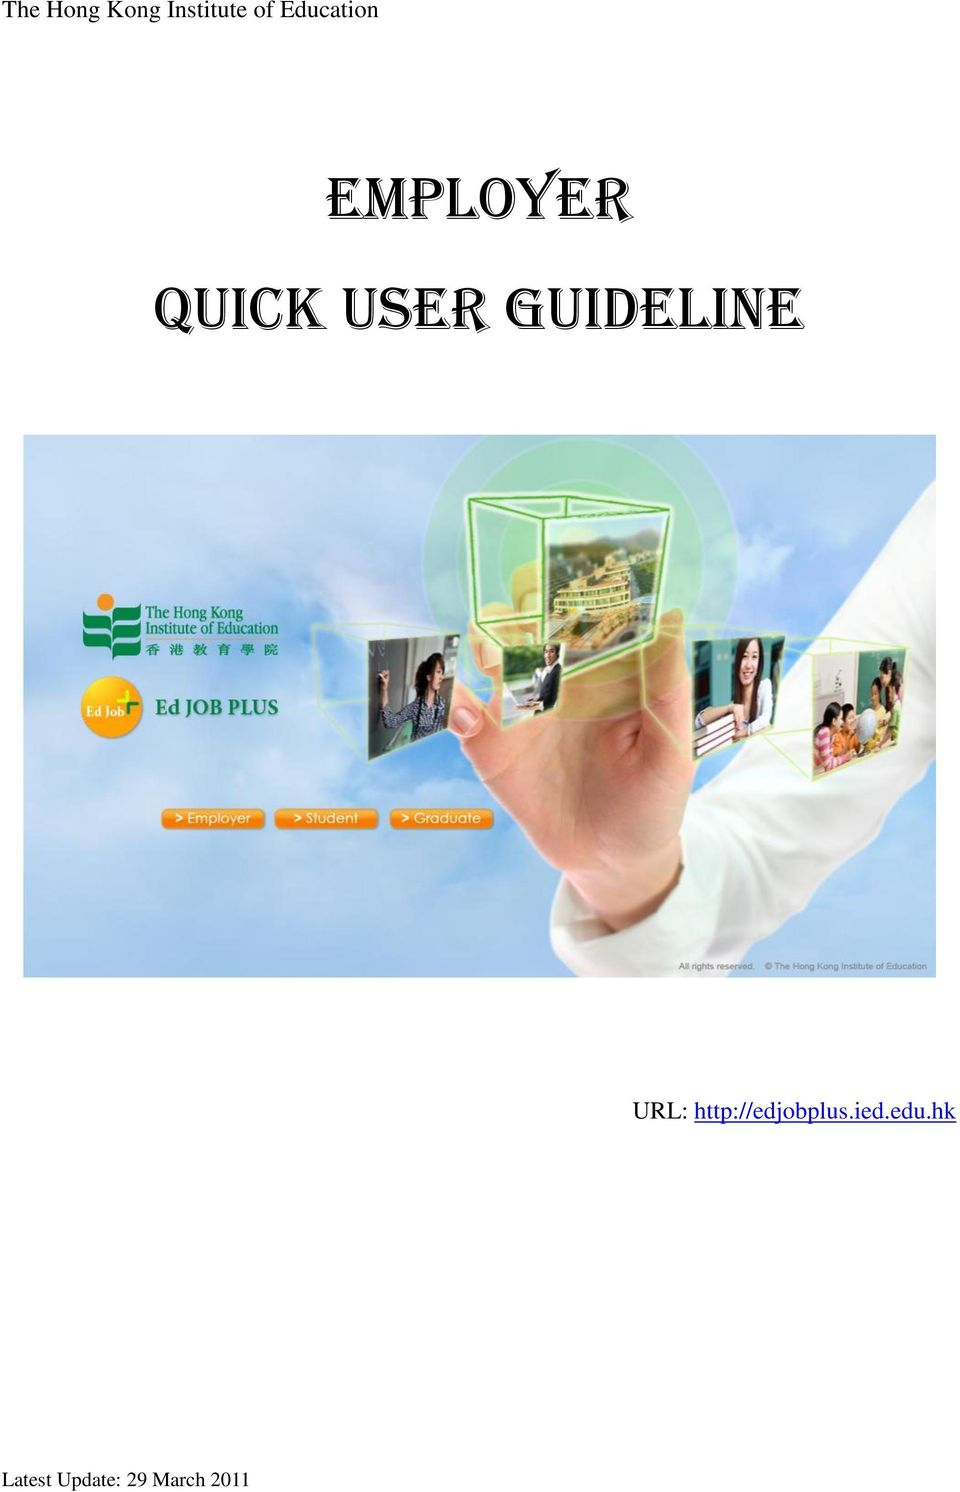 Quick User Guideline